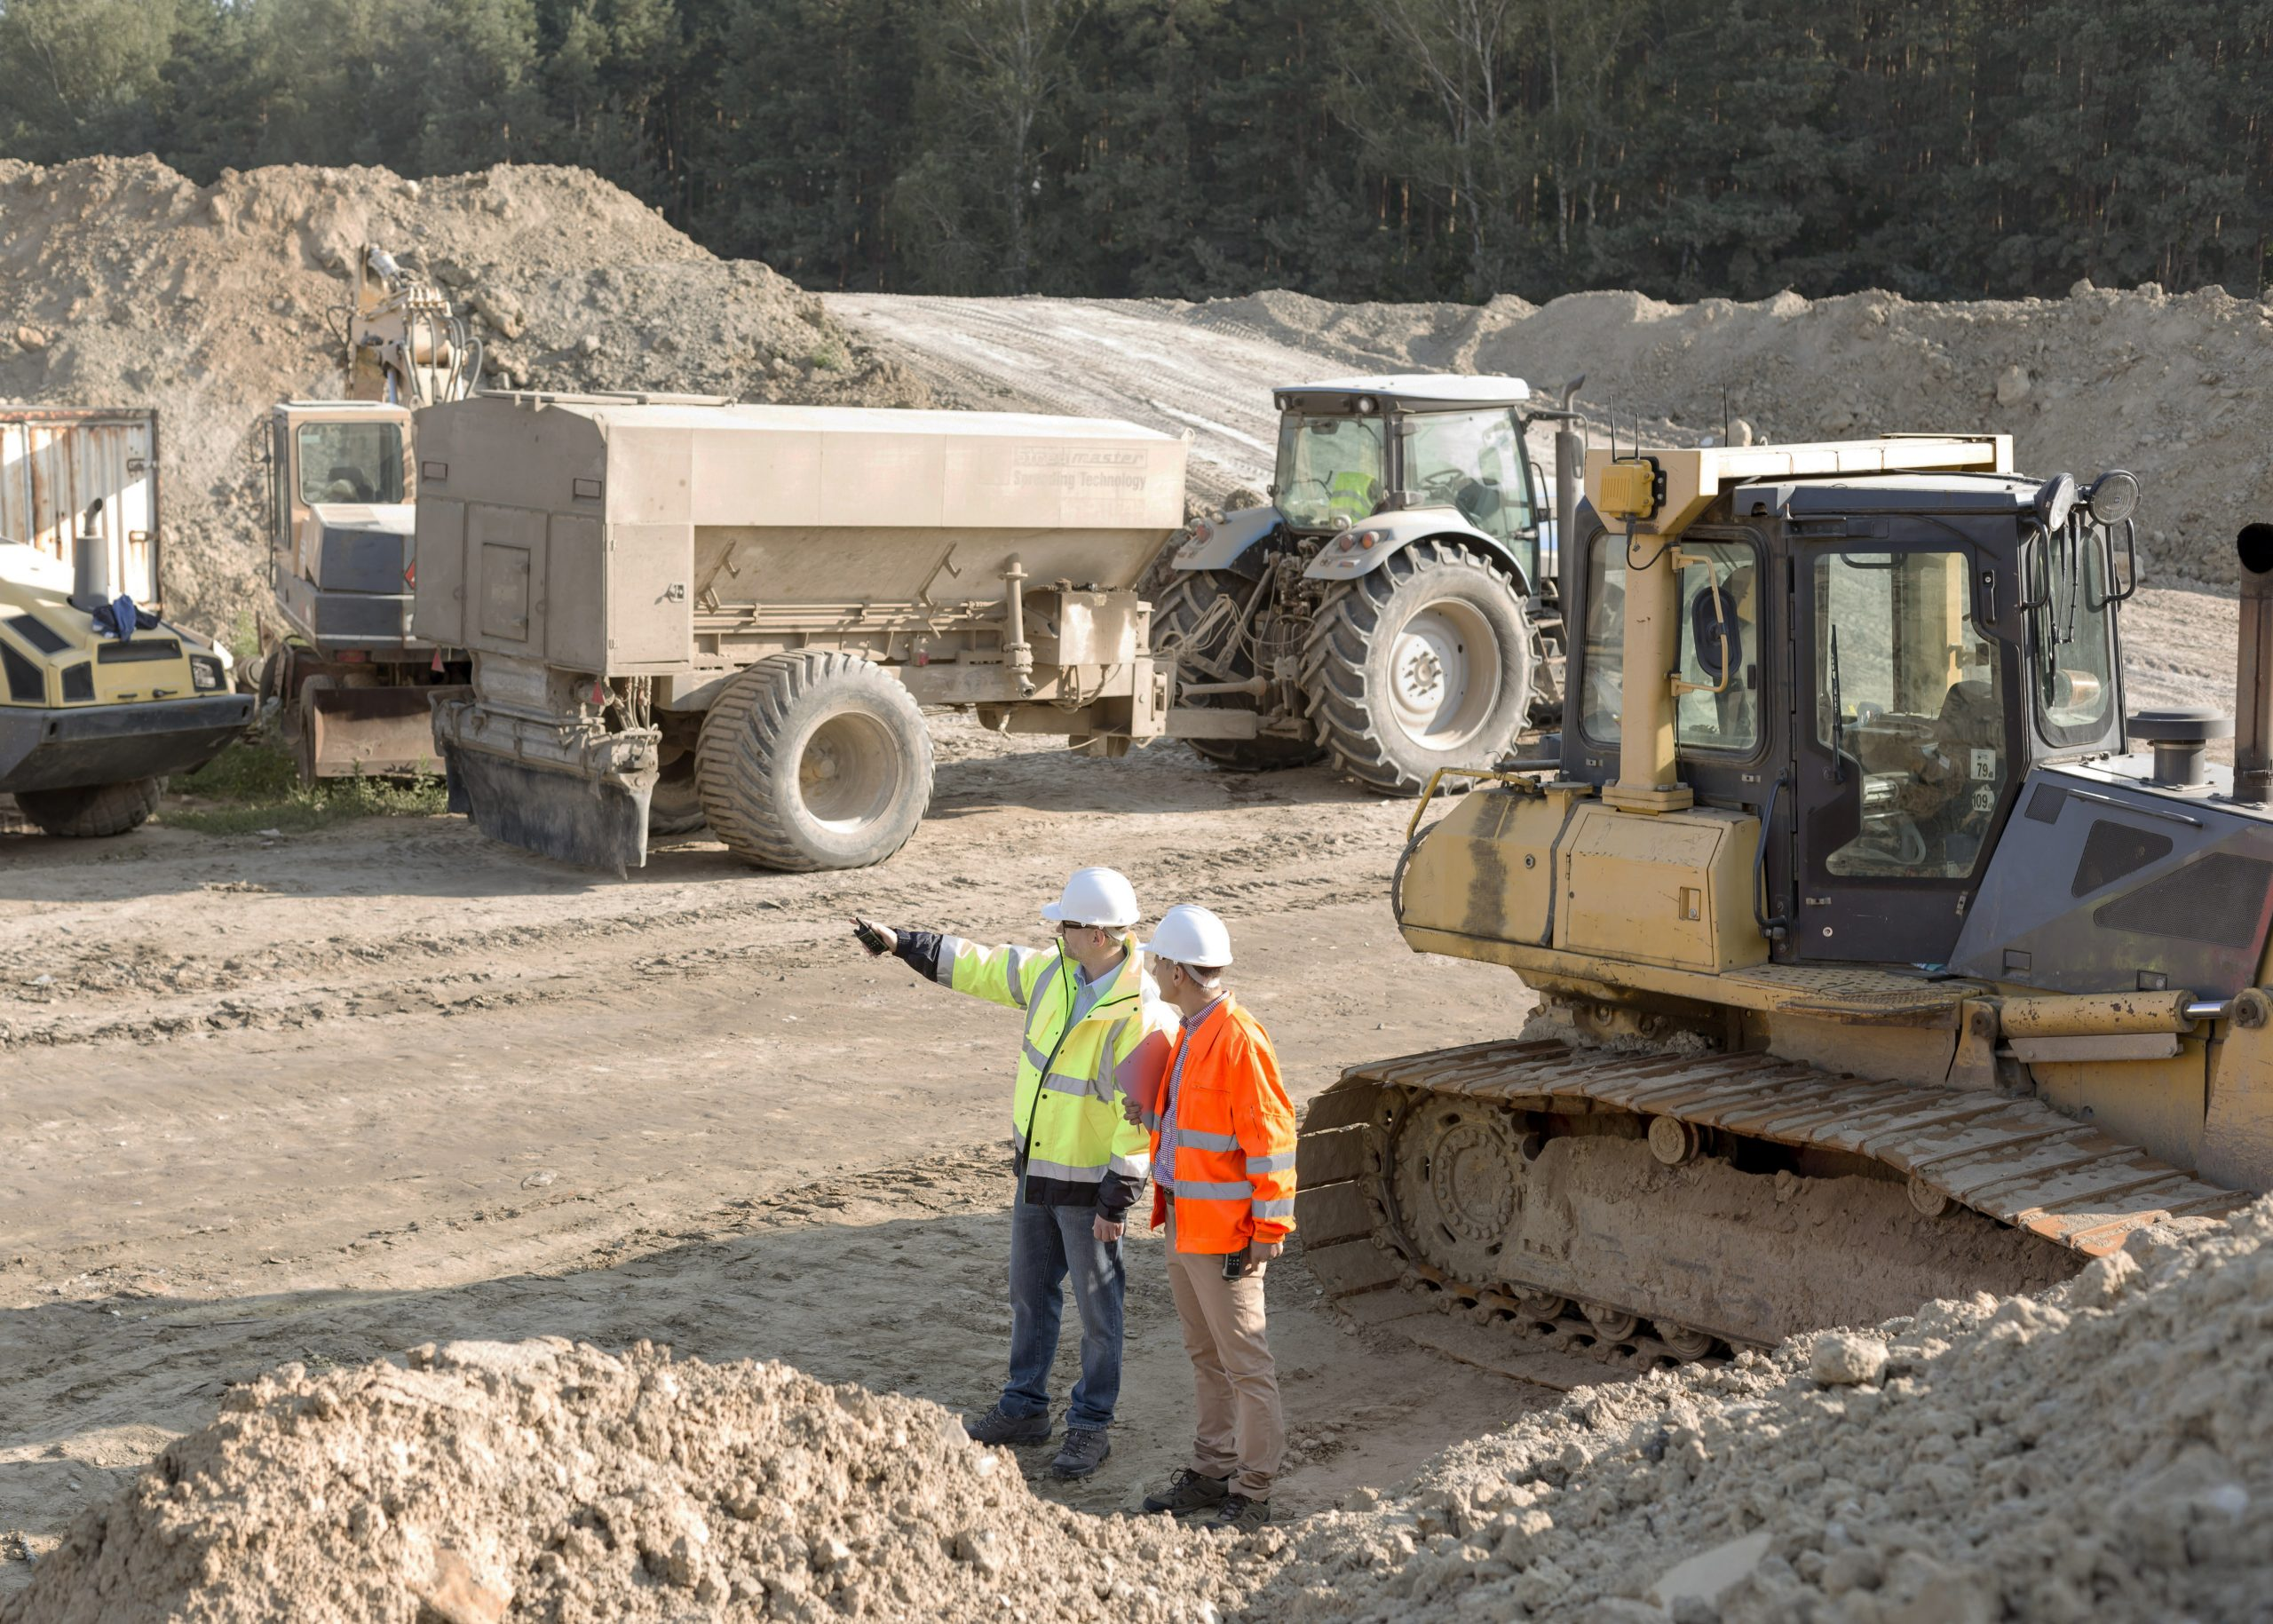 Two men at an excavation site. Link takes you to Business Loans page.